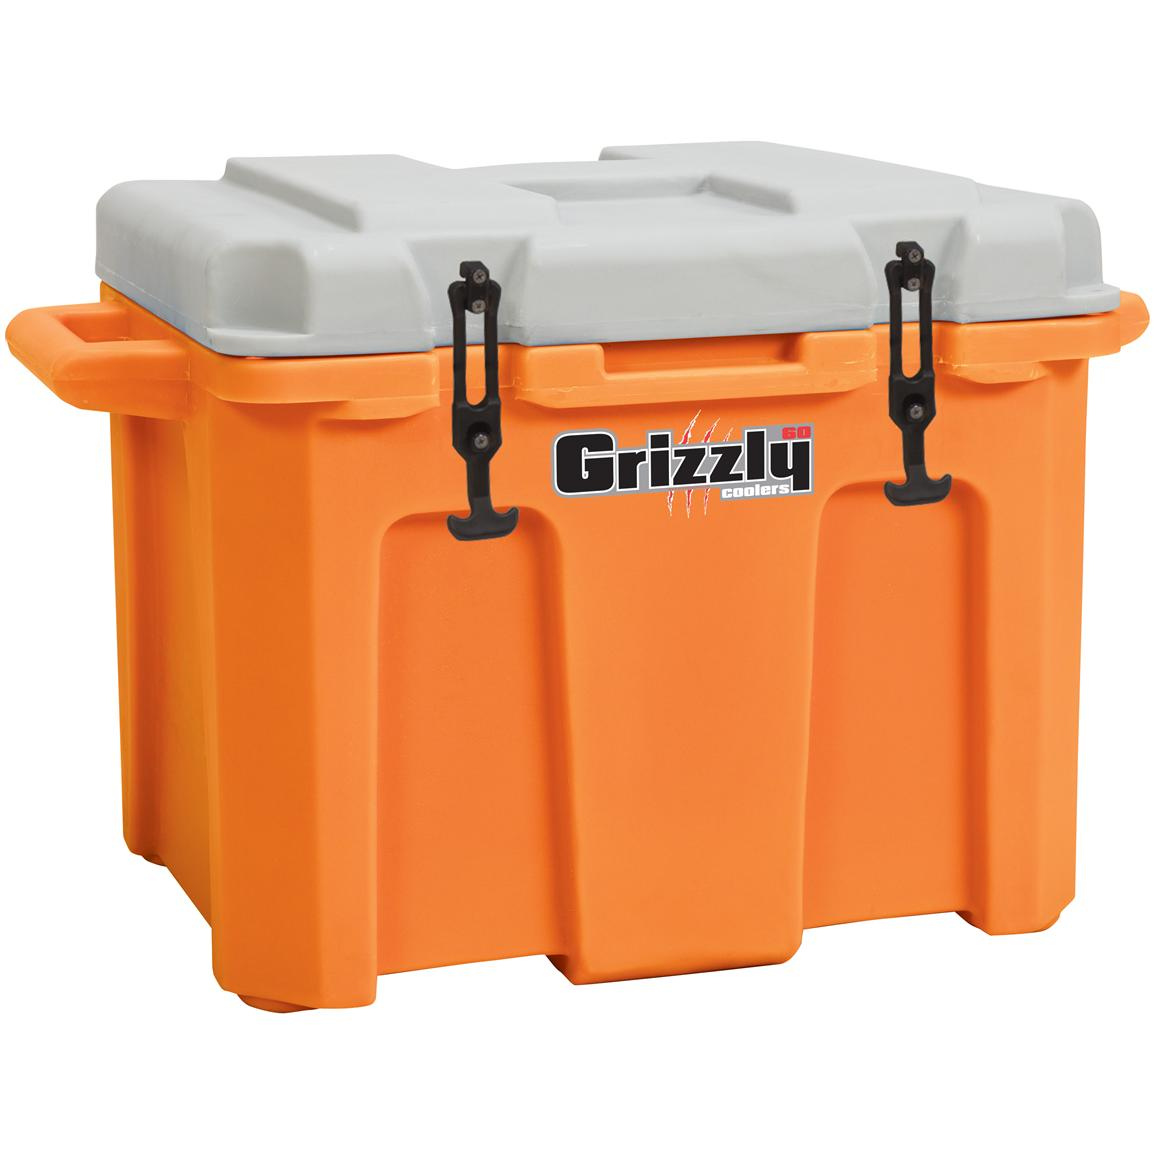 Grizzly 174 60 Extreme Outdoor Cooler 227993 Coolers At